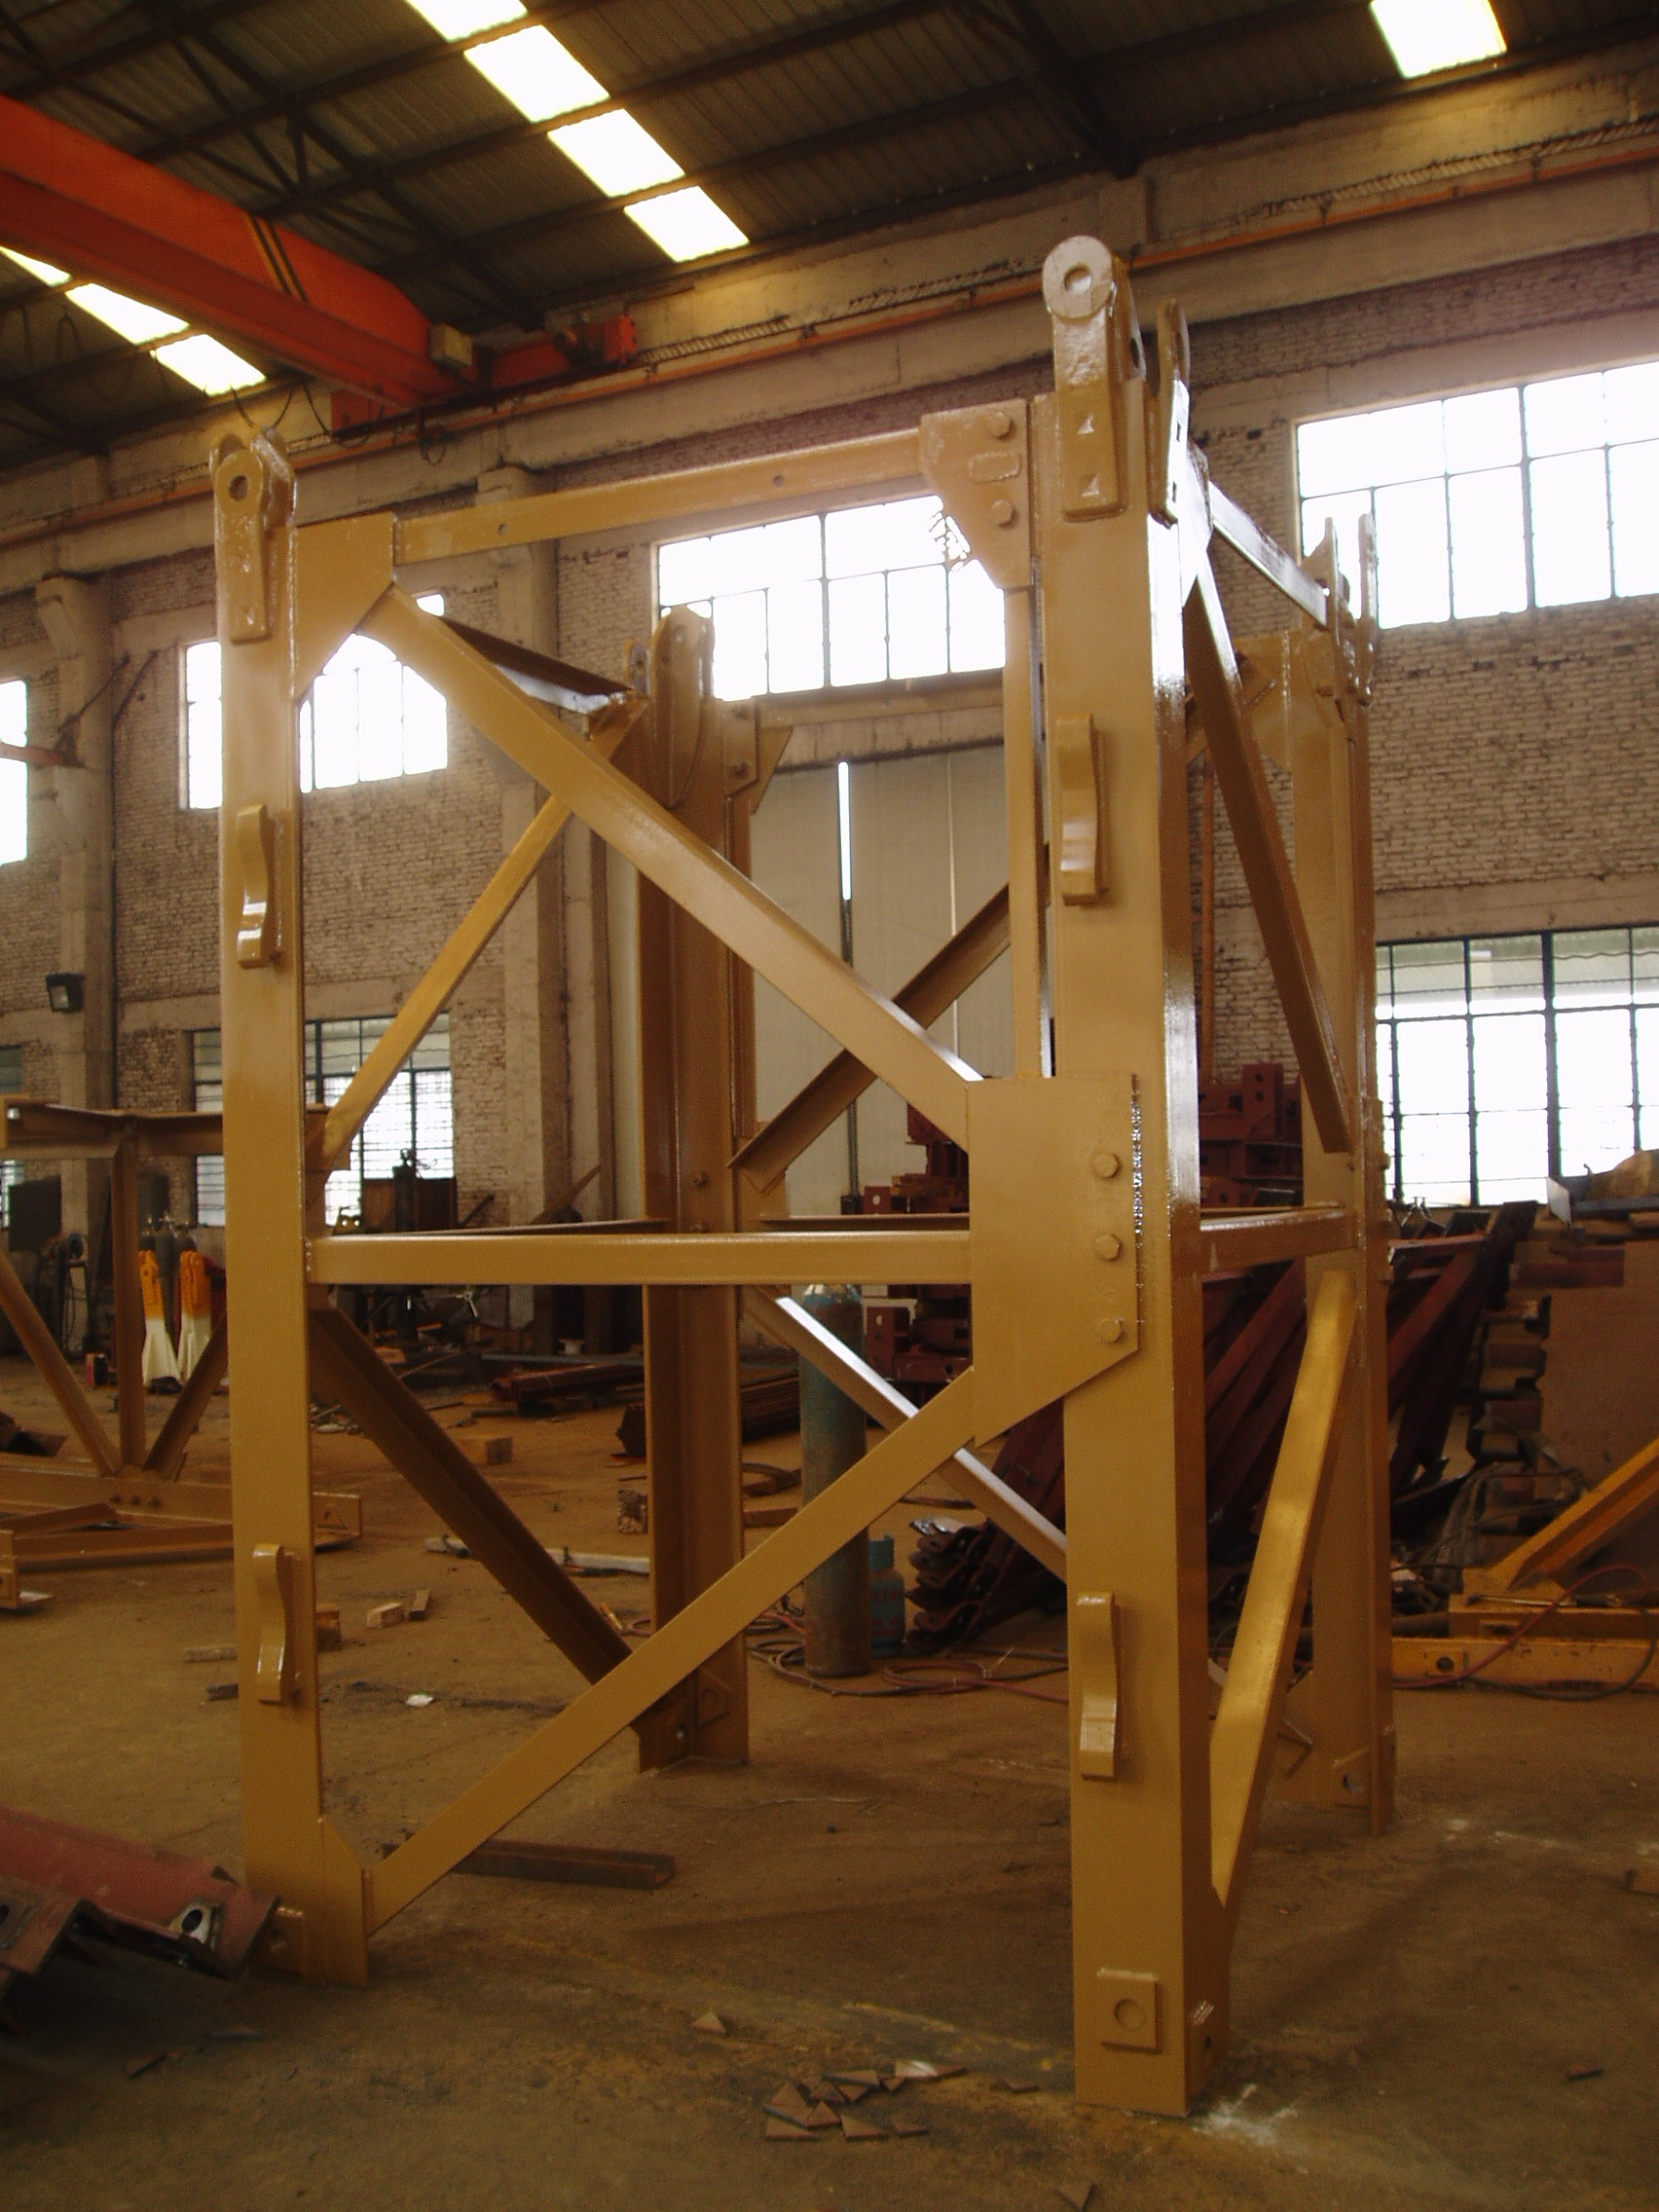 L68A1 MAST SECTION FOR TOWER CRANE